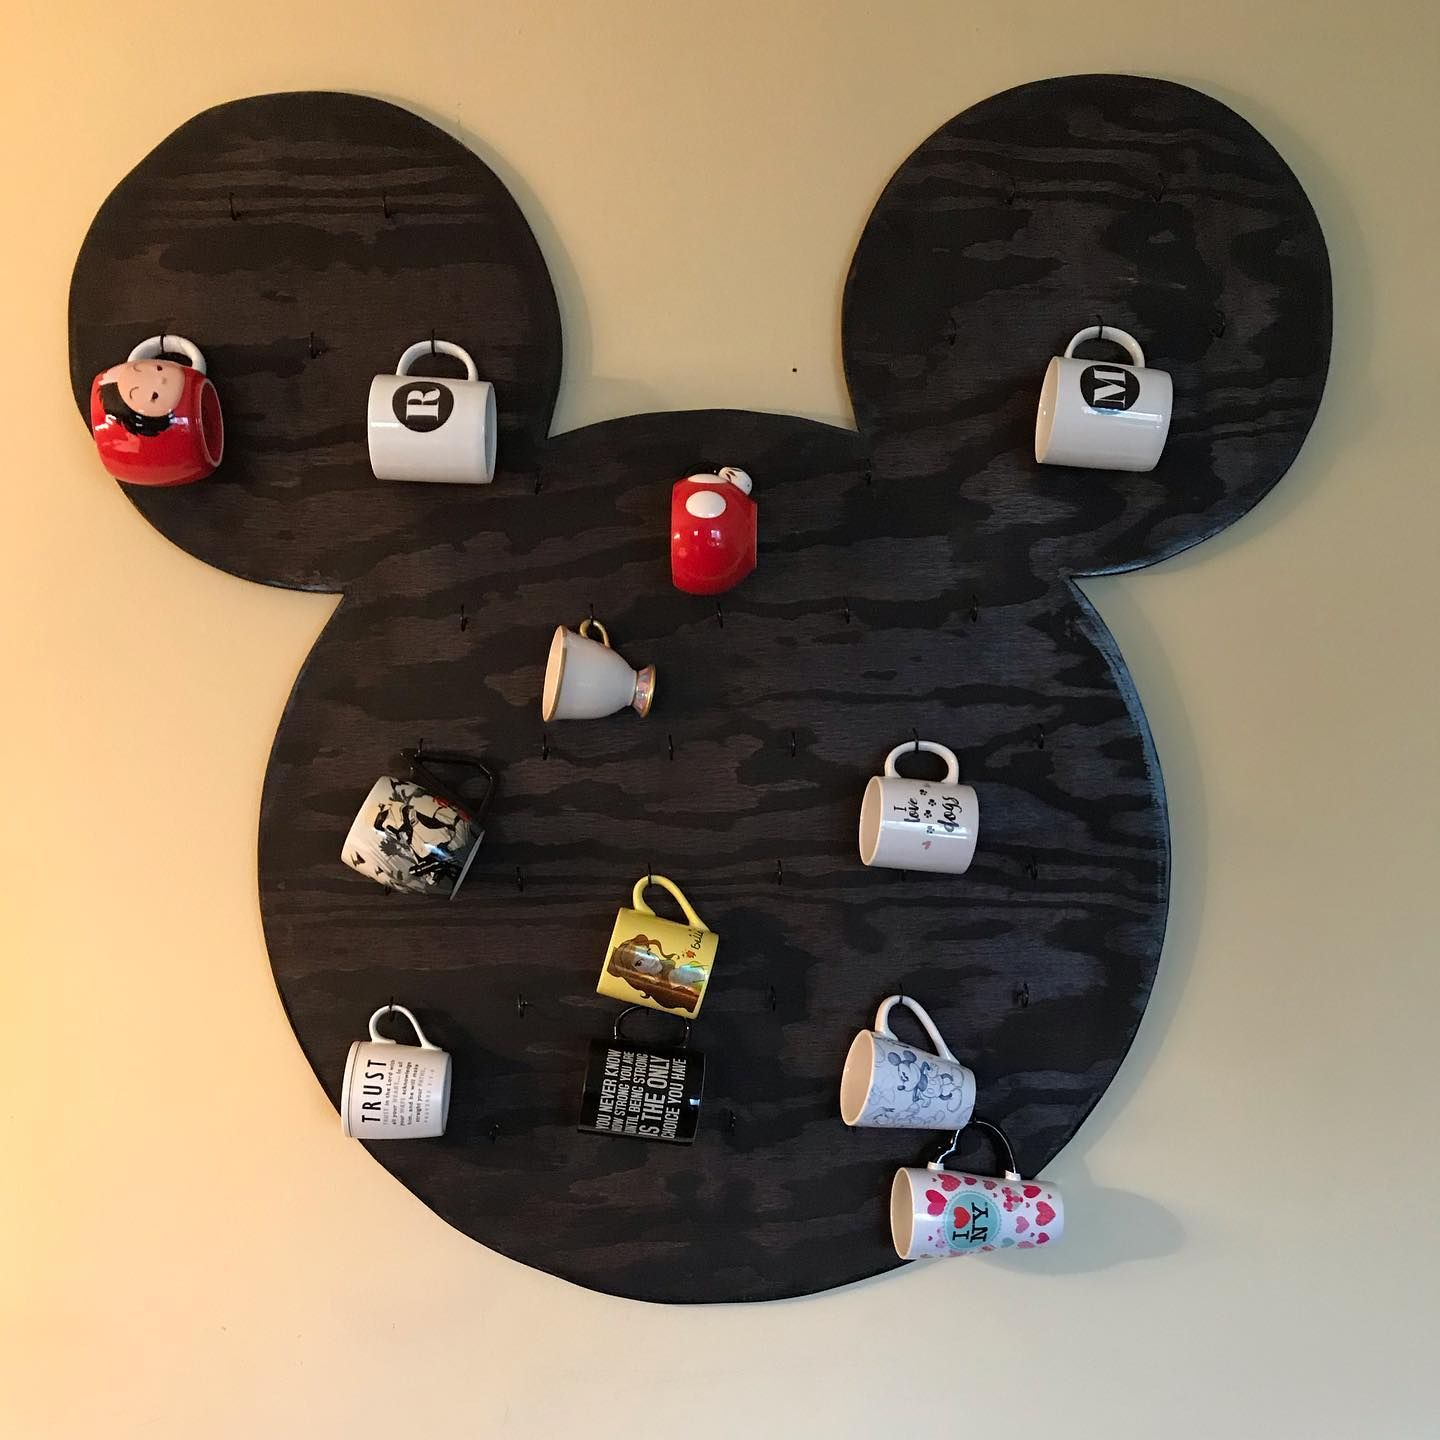 Mickey Head Mug Holder Hi Everyone This Is Our First Holder You Can Put 41 Coffee Mugs On It You Don T Need Coffee Mug Holder Mug Holder Mickey Mouse Mug